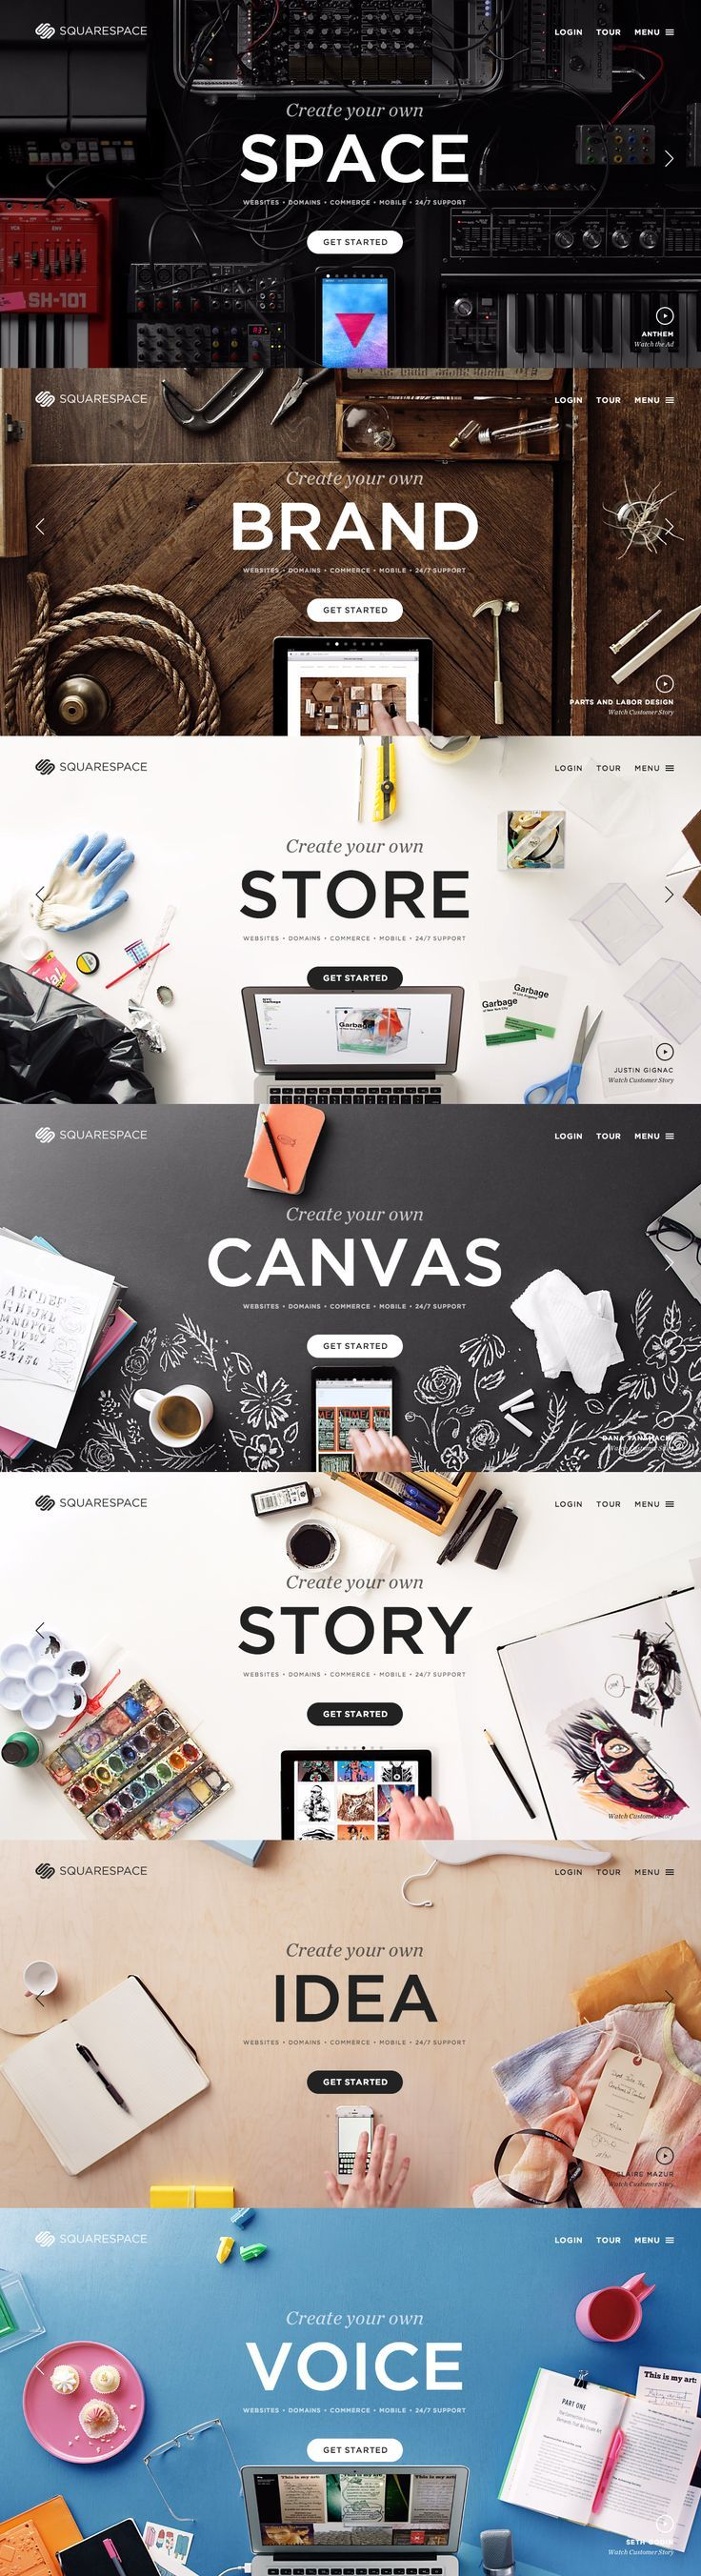 Squarespace - new homepage is pretty sweet. I was looking at…  Latest News & Trends on #webdesign | http://webworksagency.com